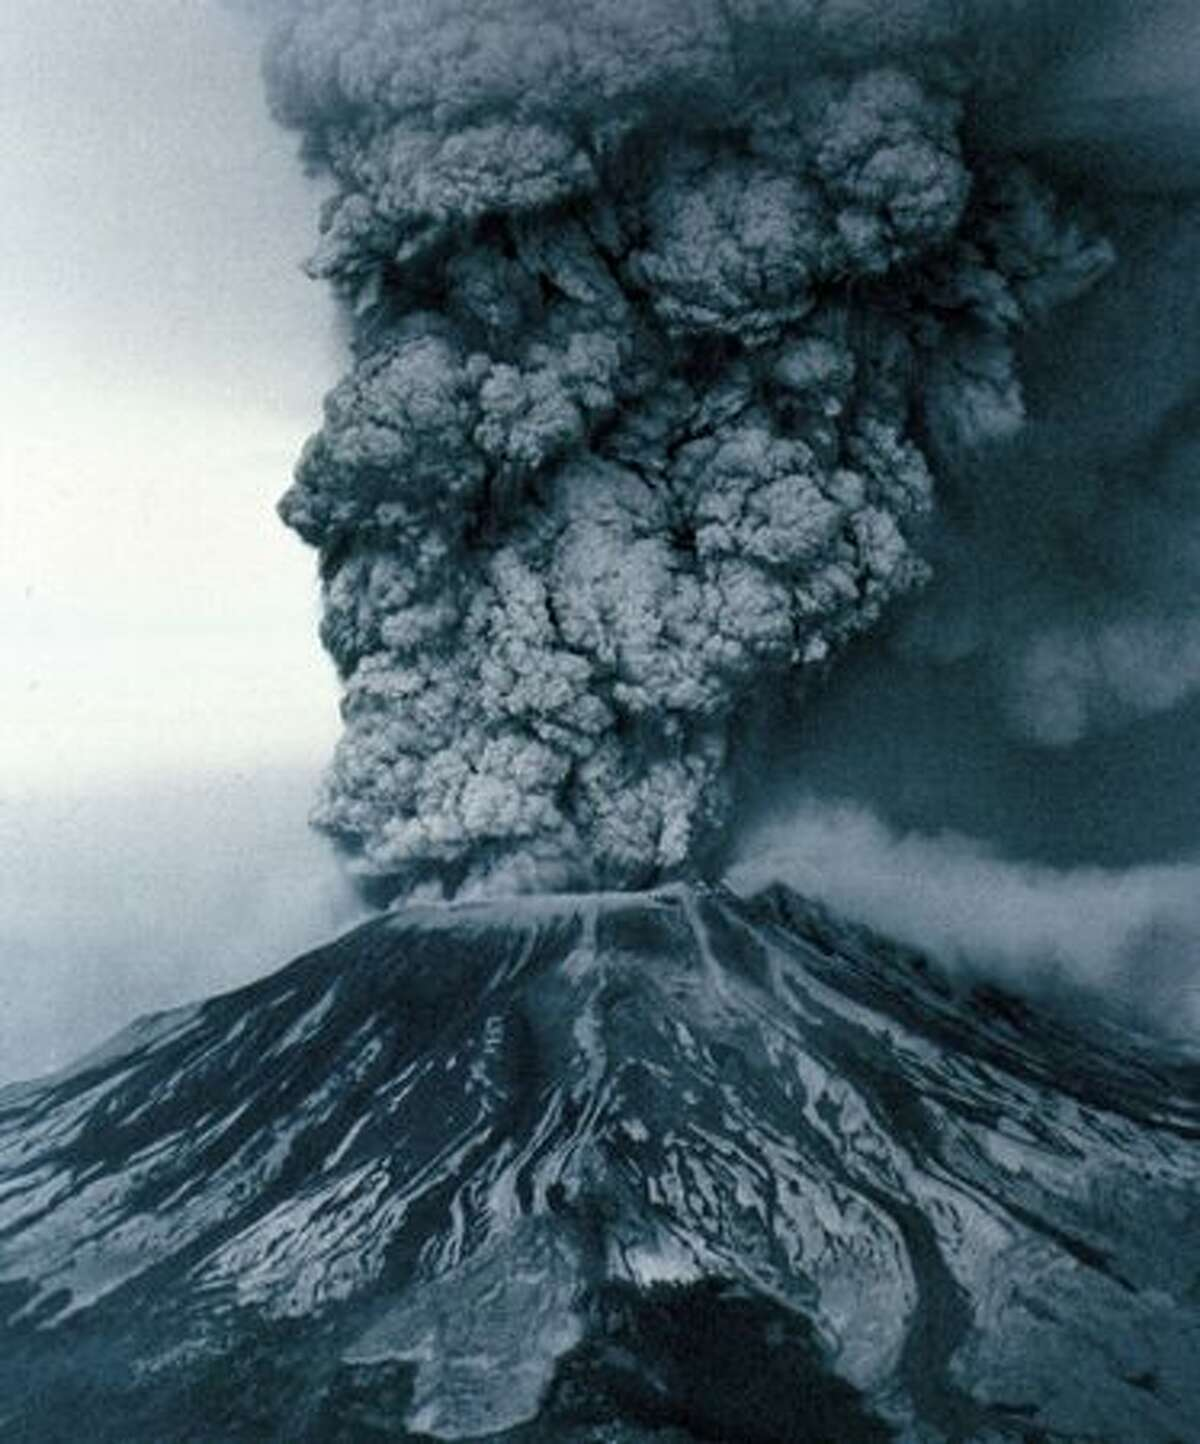 May 18, 1980 Mount St. Helens erupts, causing wide-spread damage and sending ash thousands of feet into the air. (Photo by Grant M. Haller)